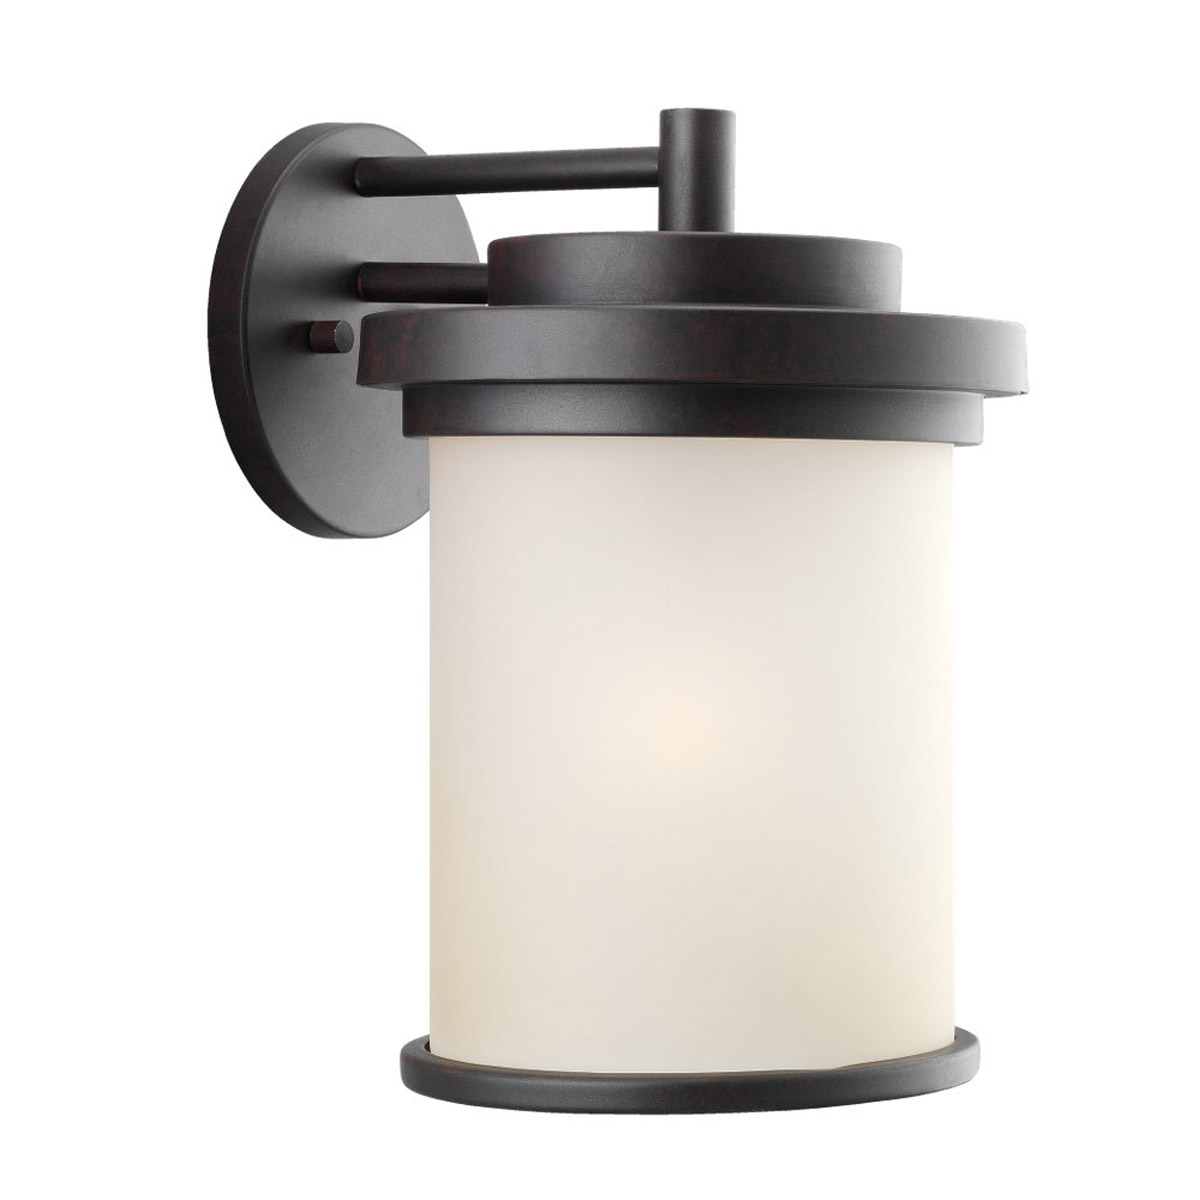 Sea Gull Lighting Winnetka 1 Light Outdoor Wall Lantern in Misted Bronze 88662-814